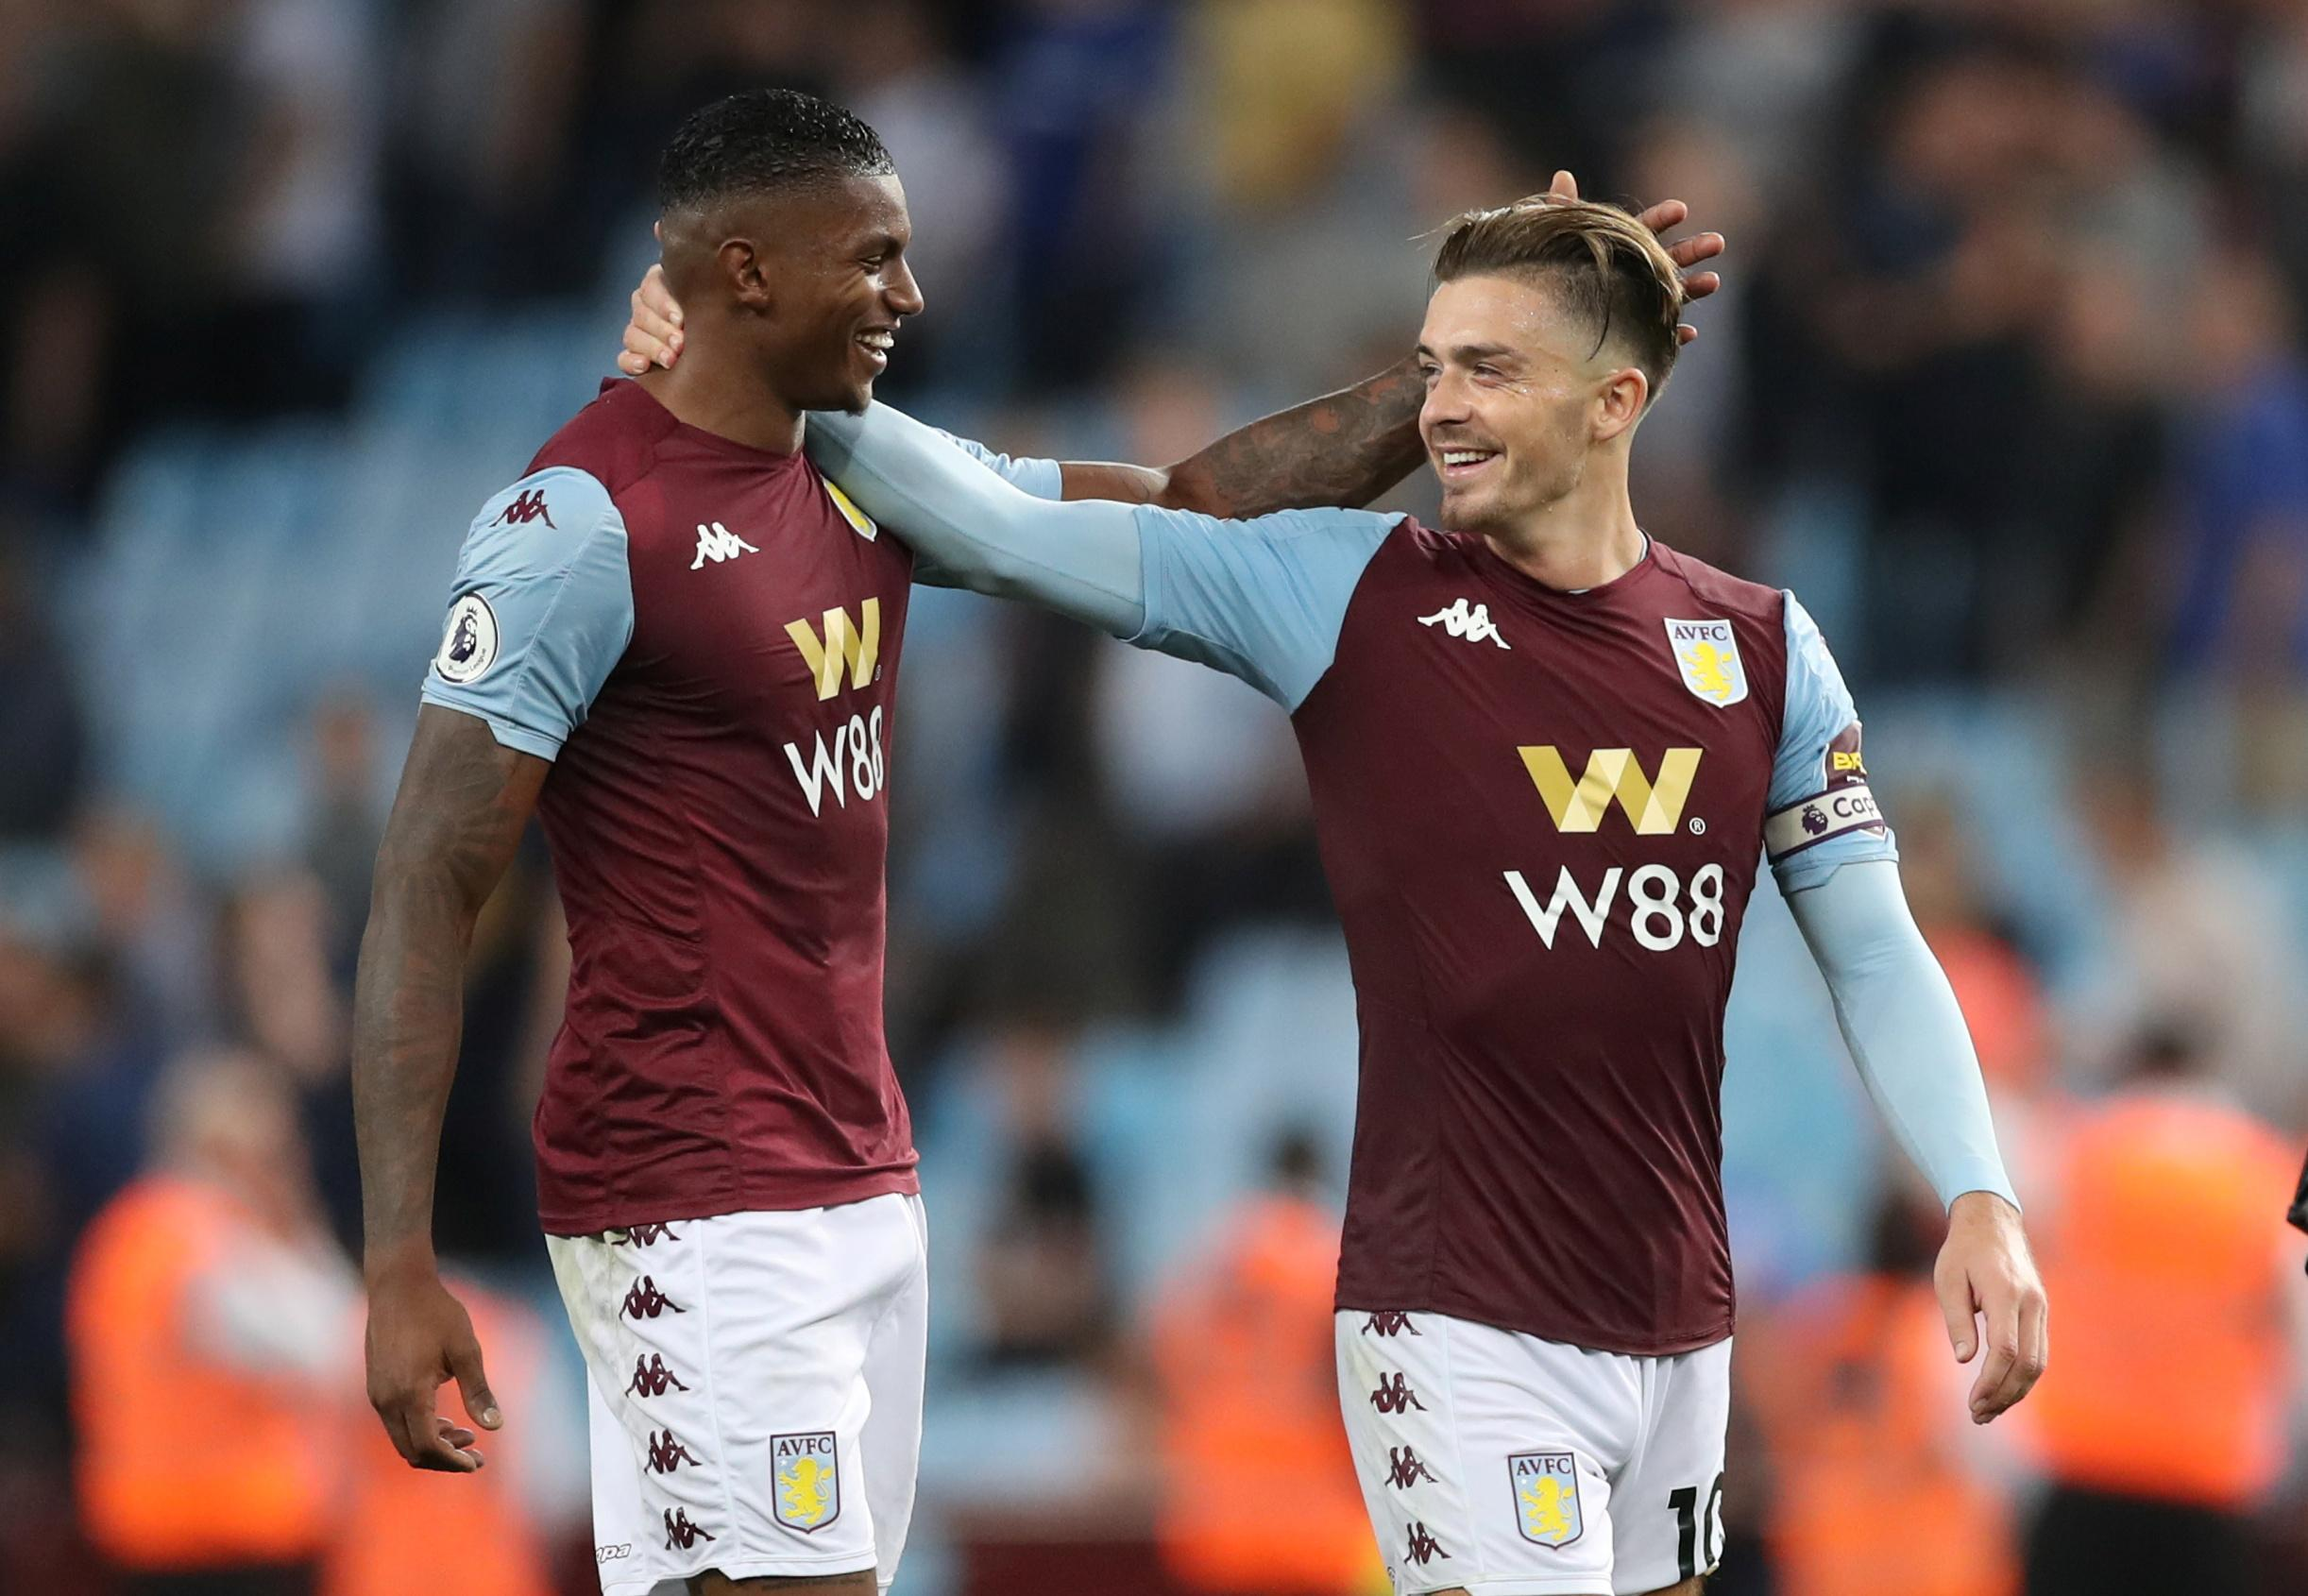 Villa get first points with 2-0 victory over Everton